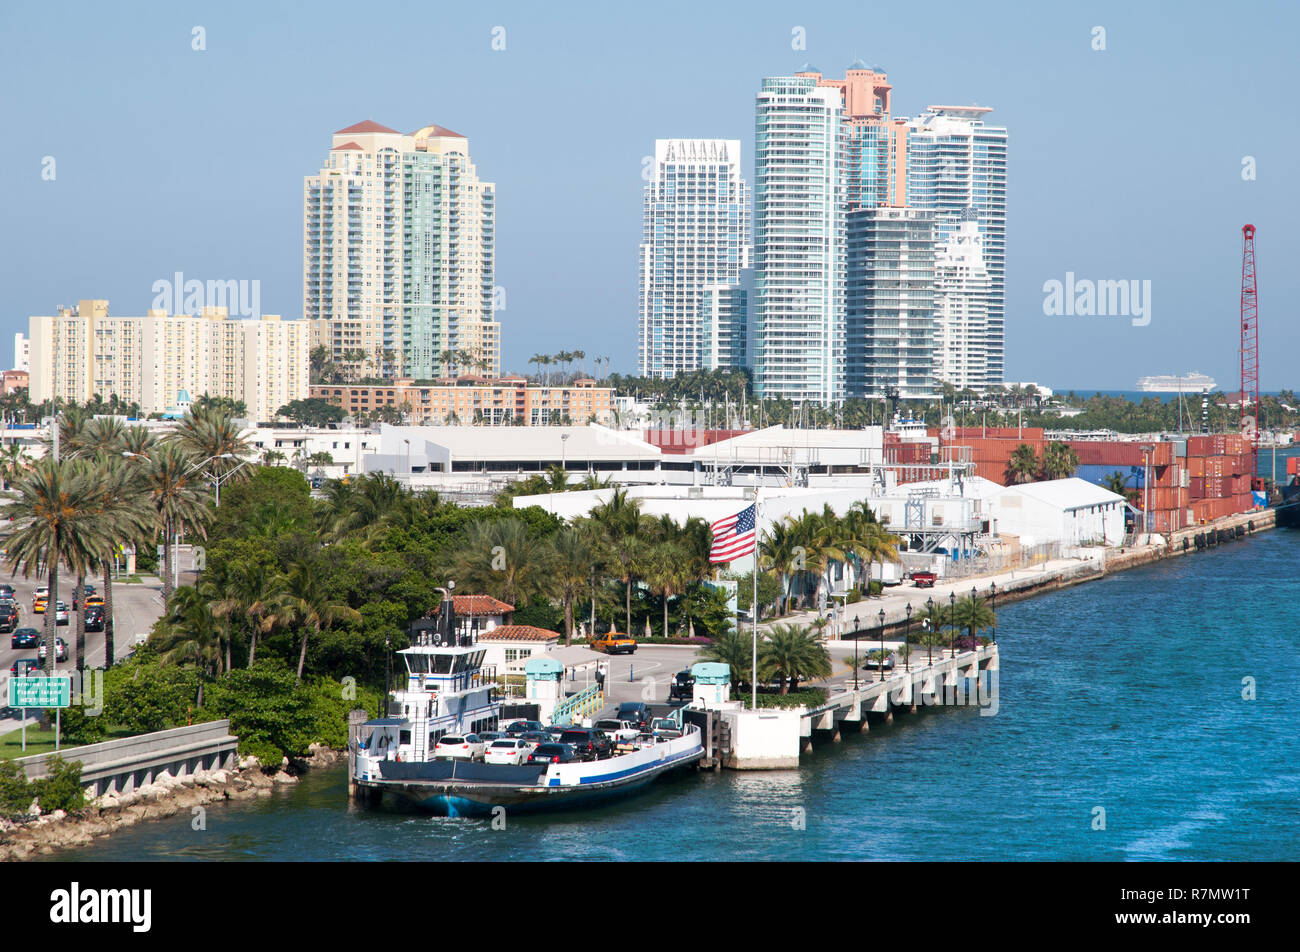 The ferryboat ready to depart, the transportation between Miami and Fisher island (Florida). - Stock Image